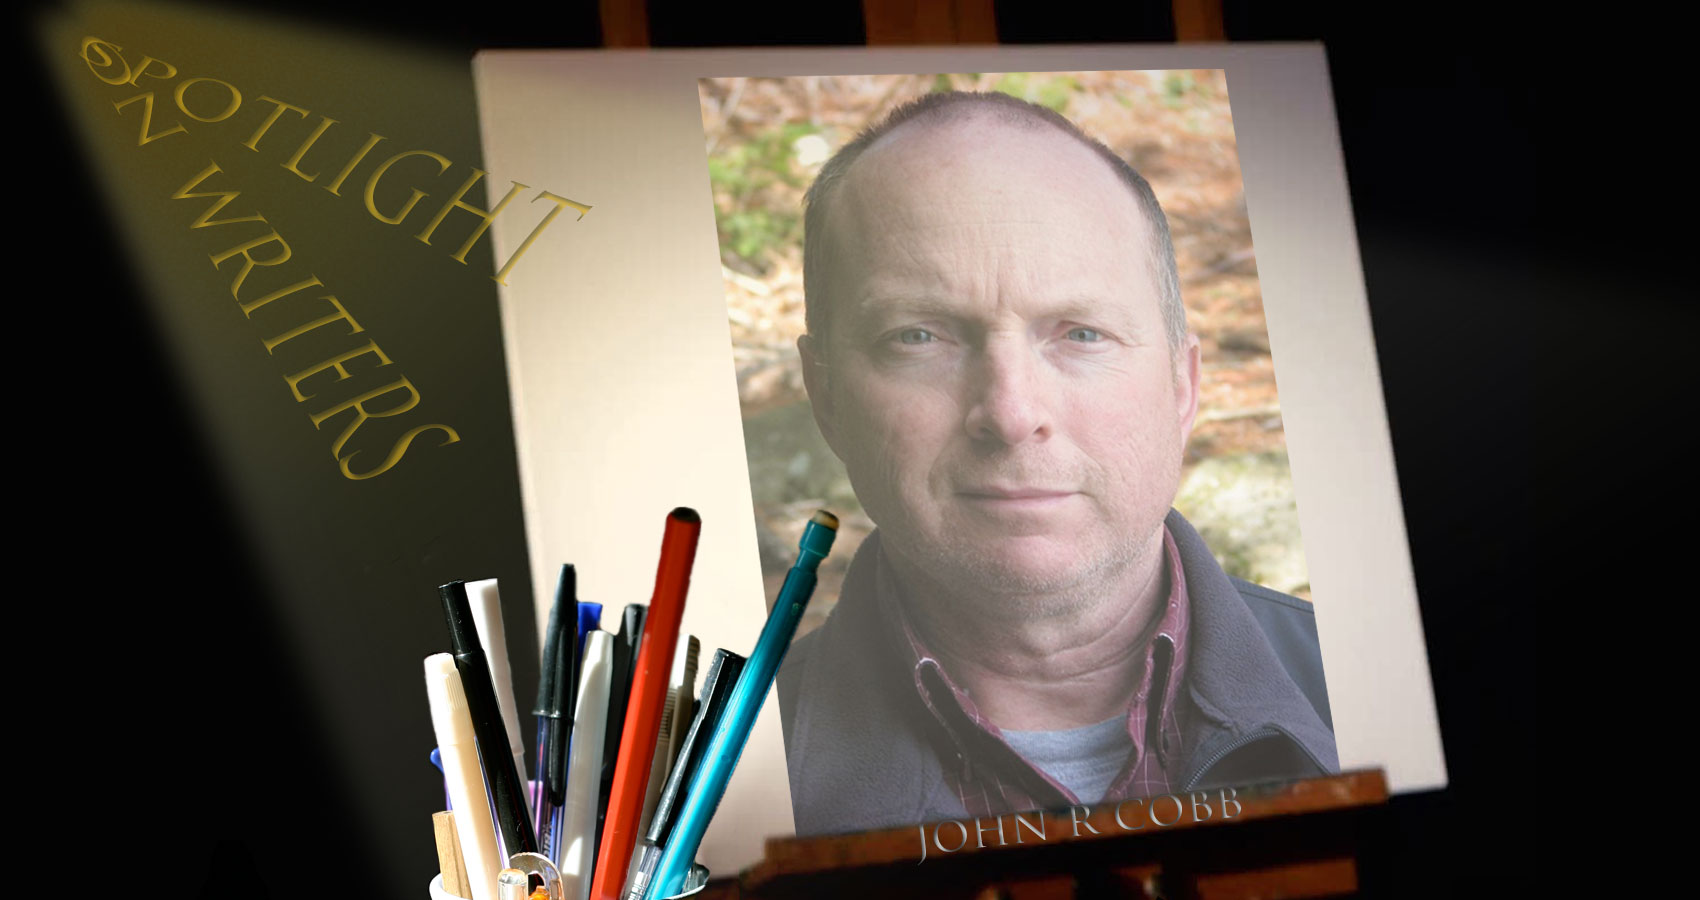 Spotlight On Writers - John R. Cobb, interview at Spillwords.com